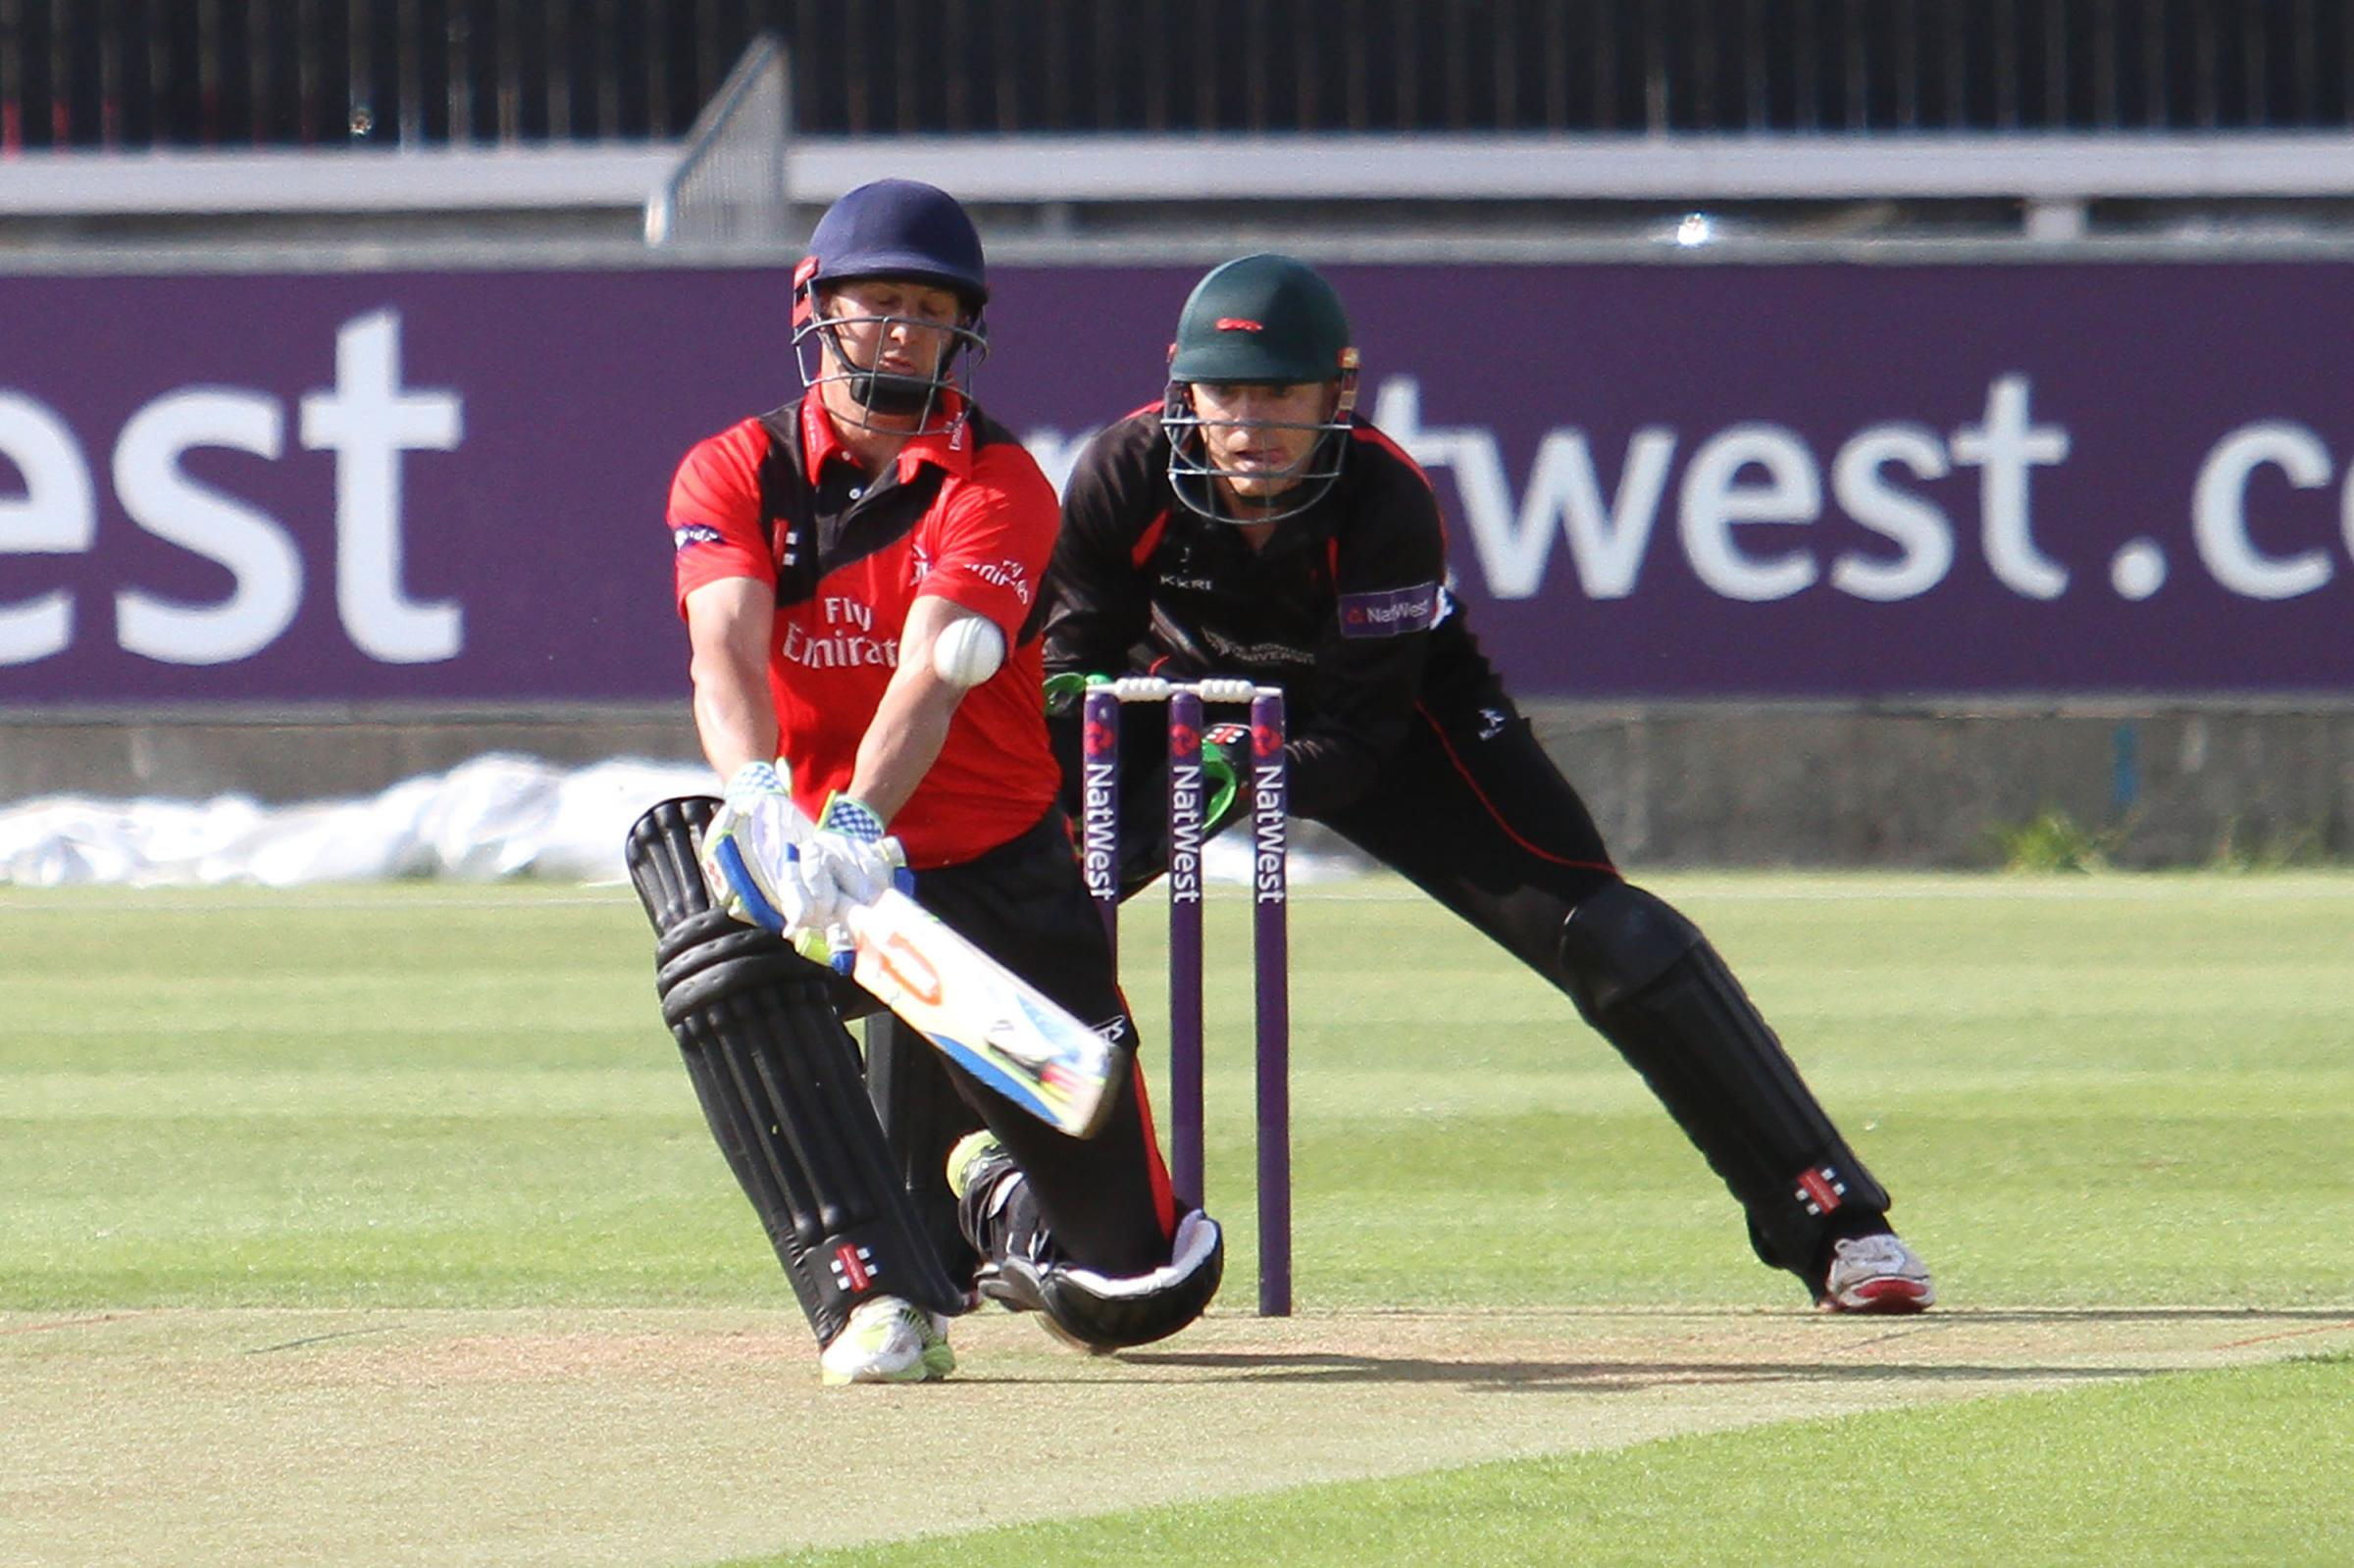 Phil Mustard of Durham Jets in batting action during  the NatWest T20 Blast Northern Division match between Durham Jets and Leicestershire Foxes at the Emirates Durham ICG on Friday 3rd July 2015